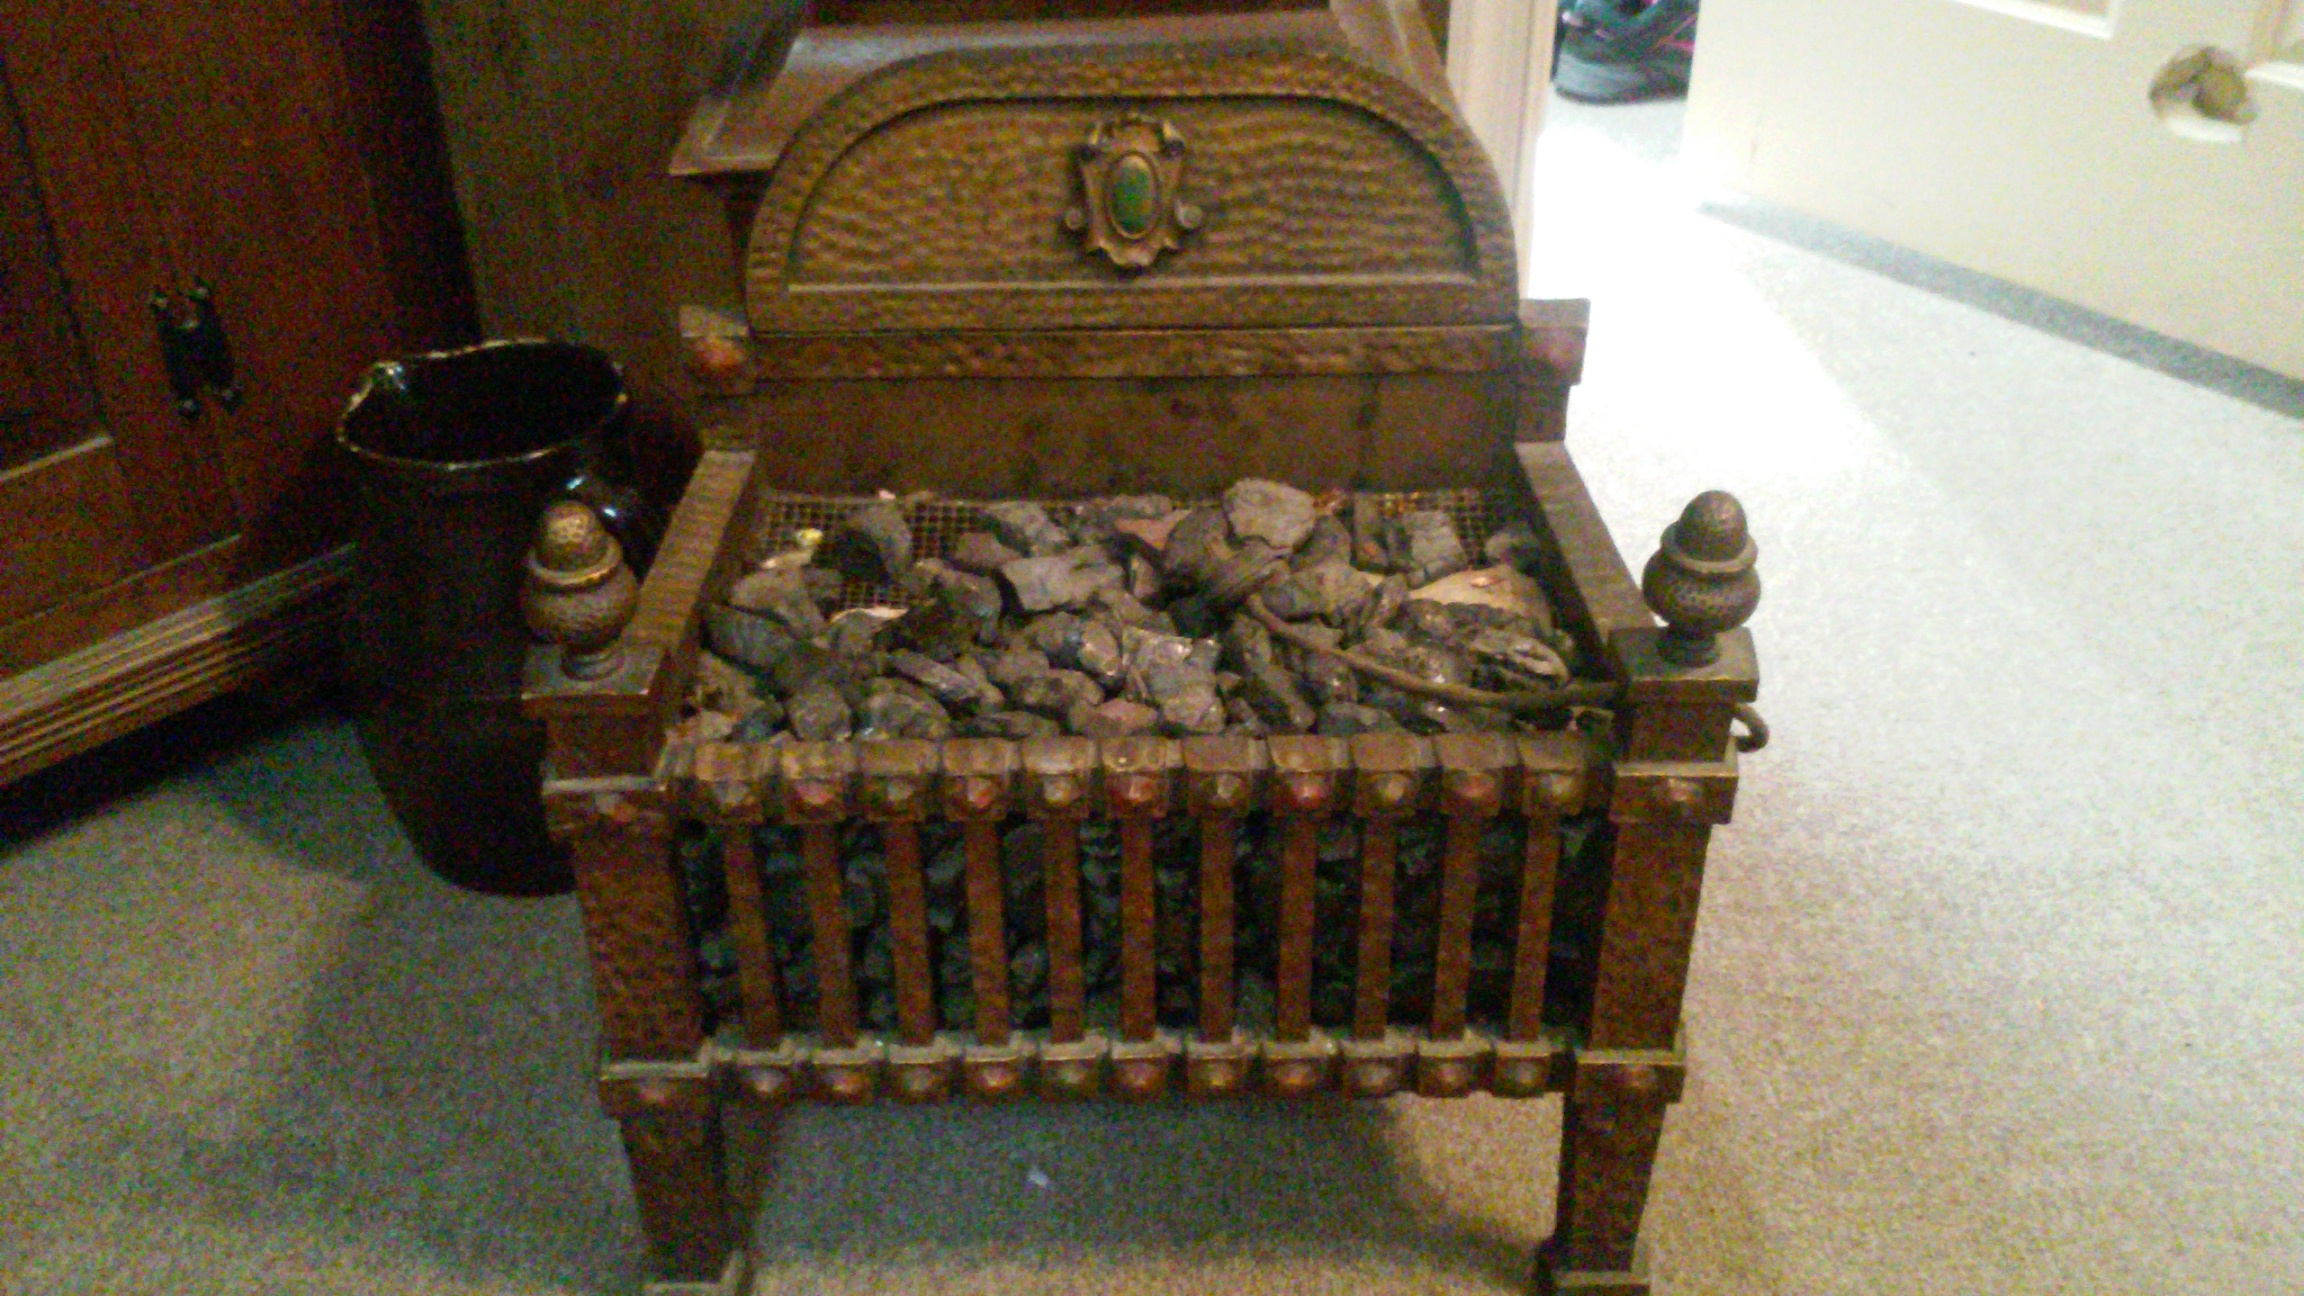 vintage electrical fireplace insert antique appraisal | InstAppraisal